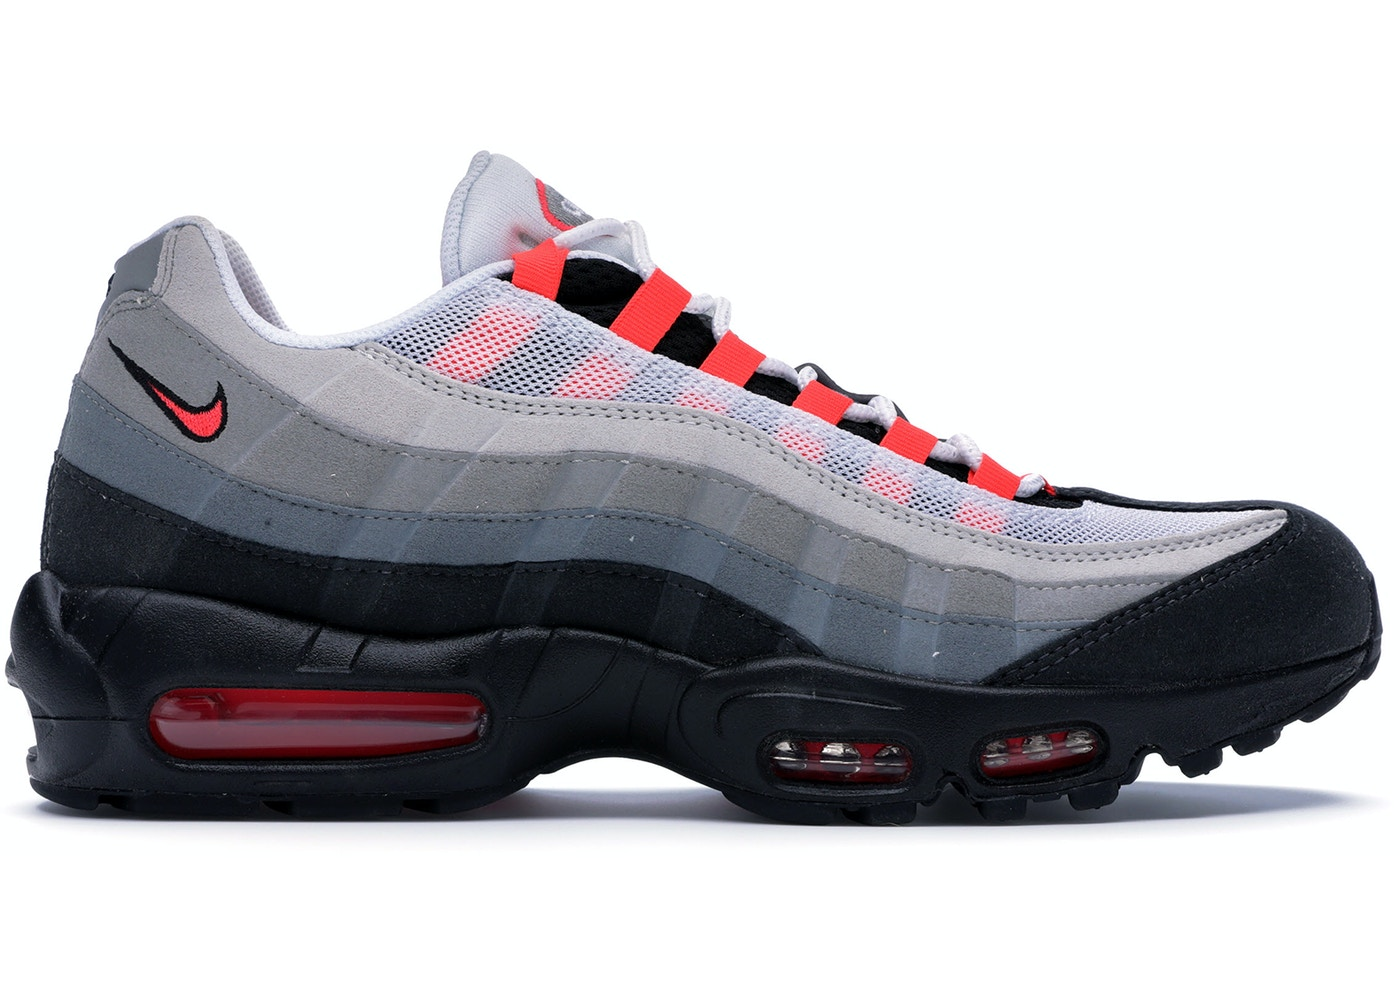 c3bd004ce886 Air Max 95 Solar Red (2011) - 609048-106